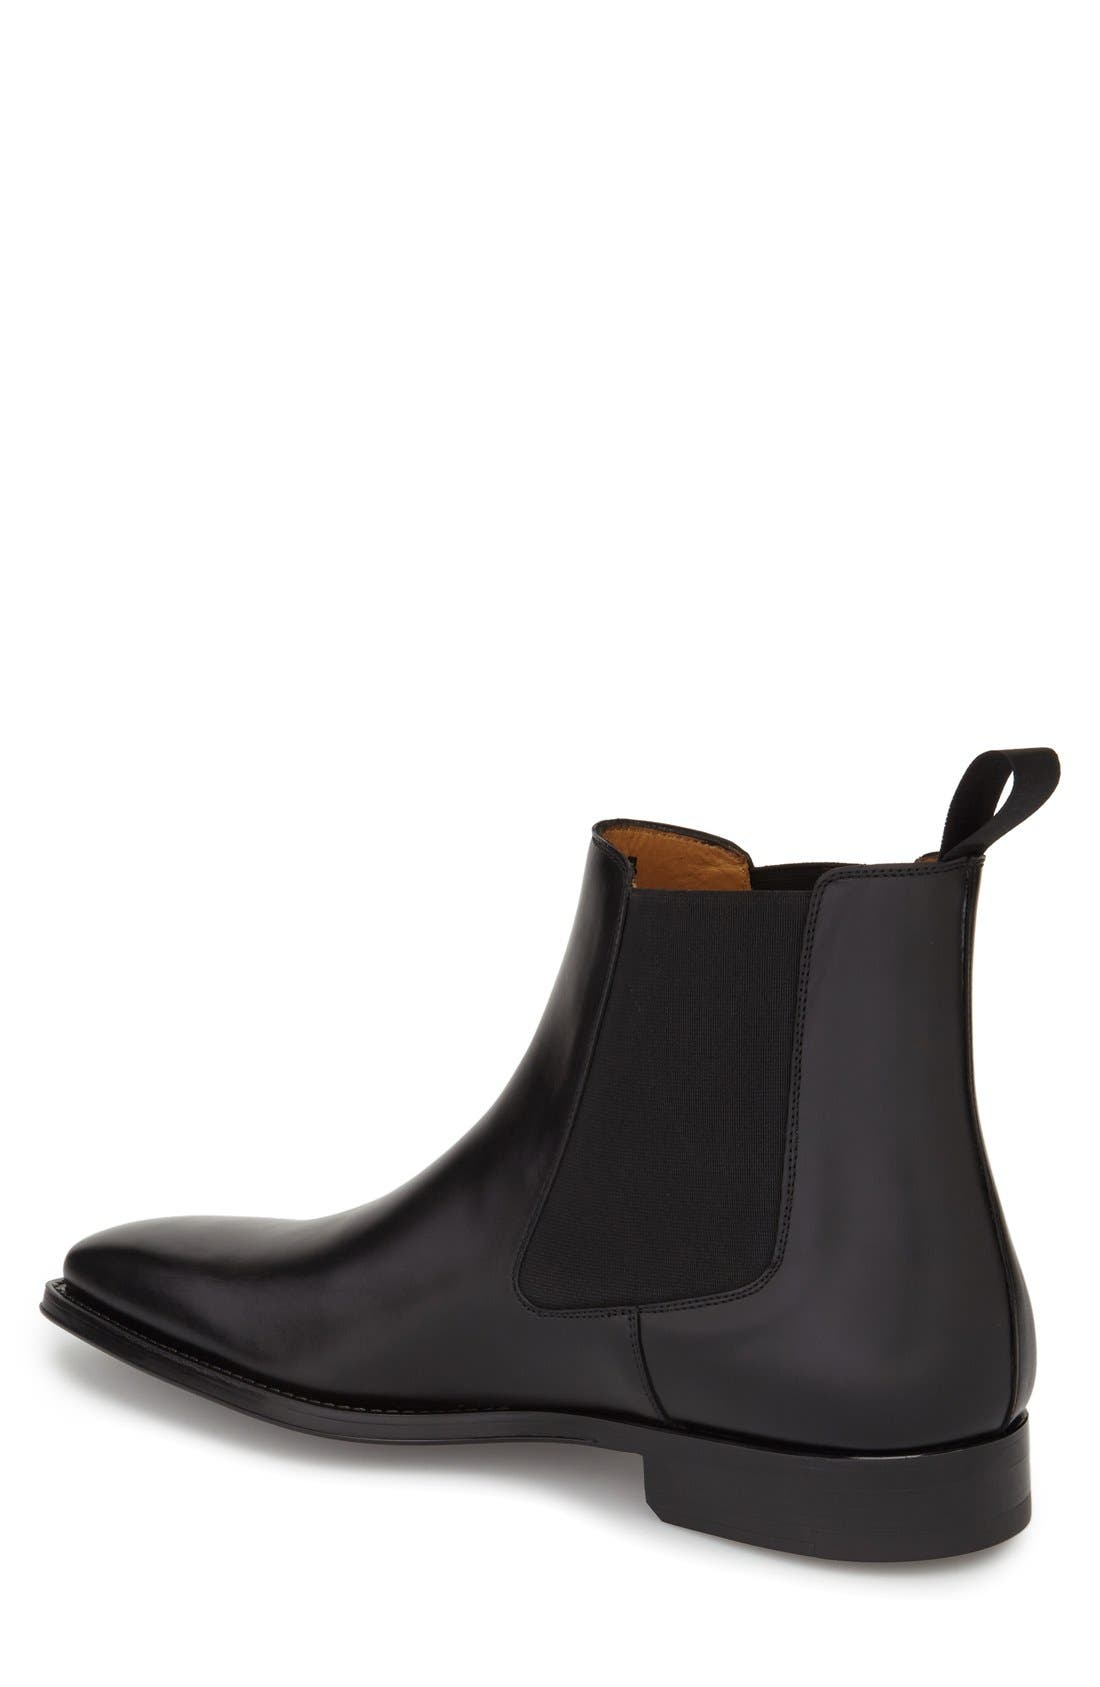 MAGNANNI, 'Sean' Chelsea Boot, Alternate thumbnail 2, color, BLACK